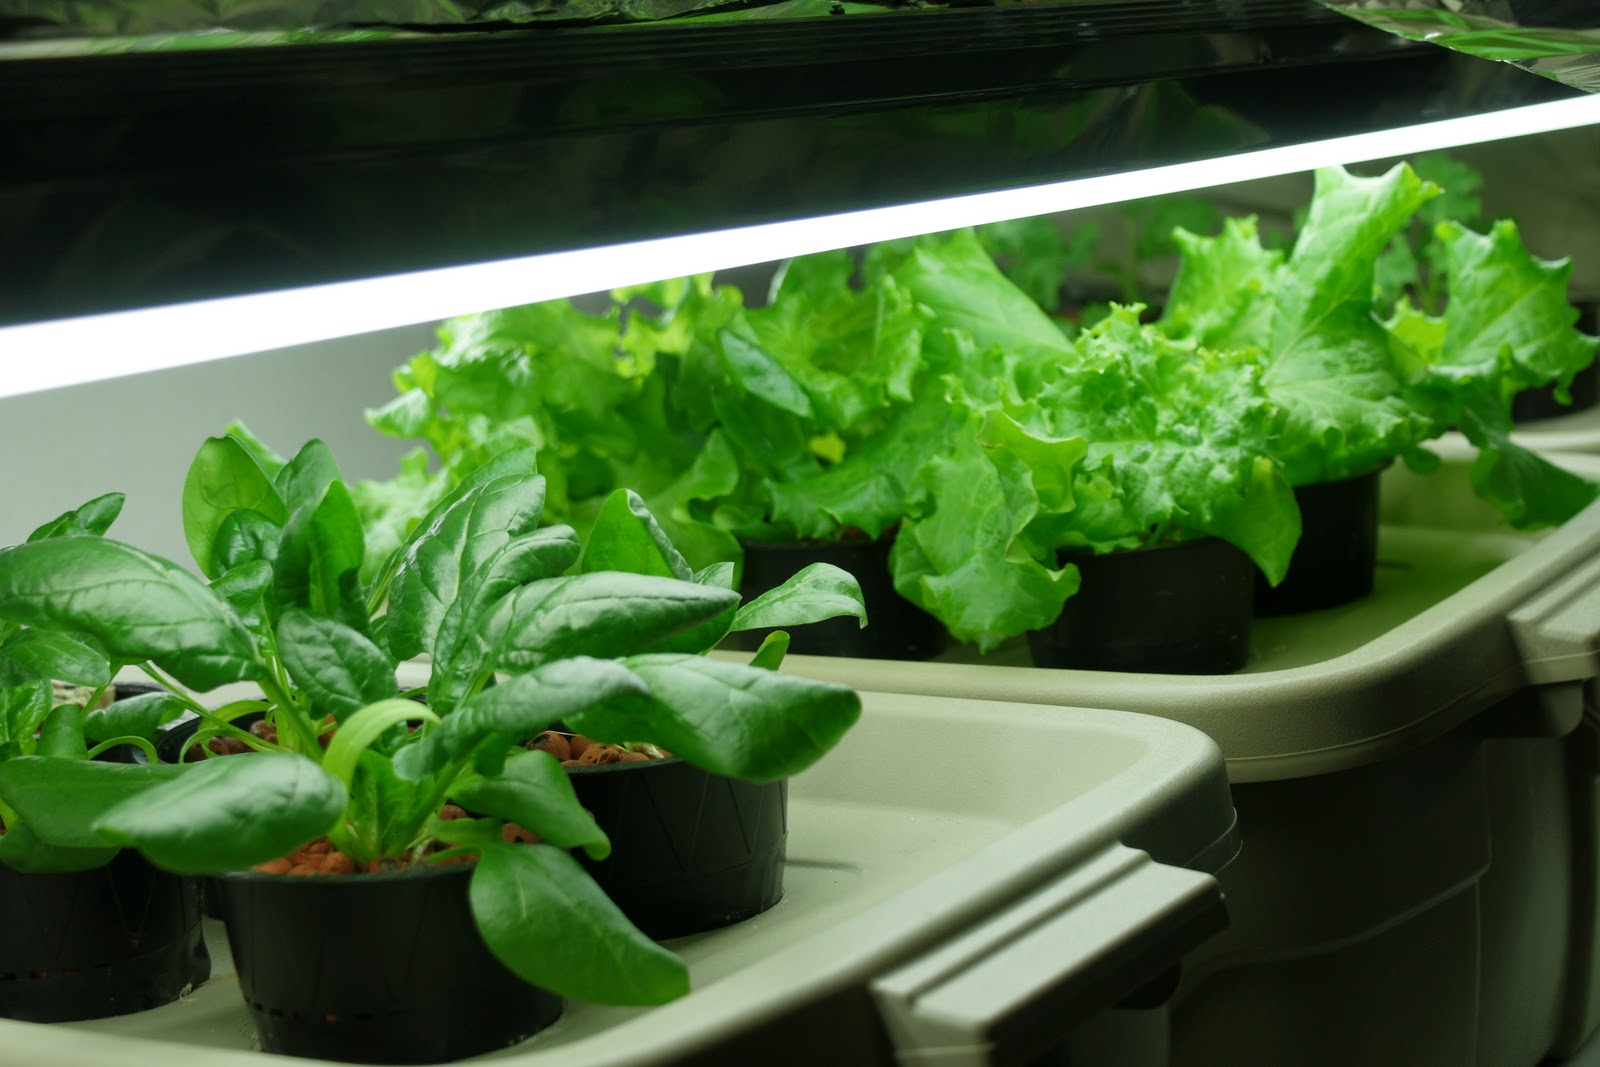 how to get rid of algae in hydroponic system